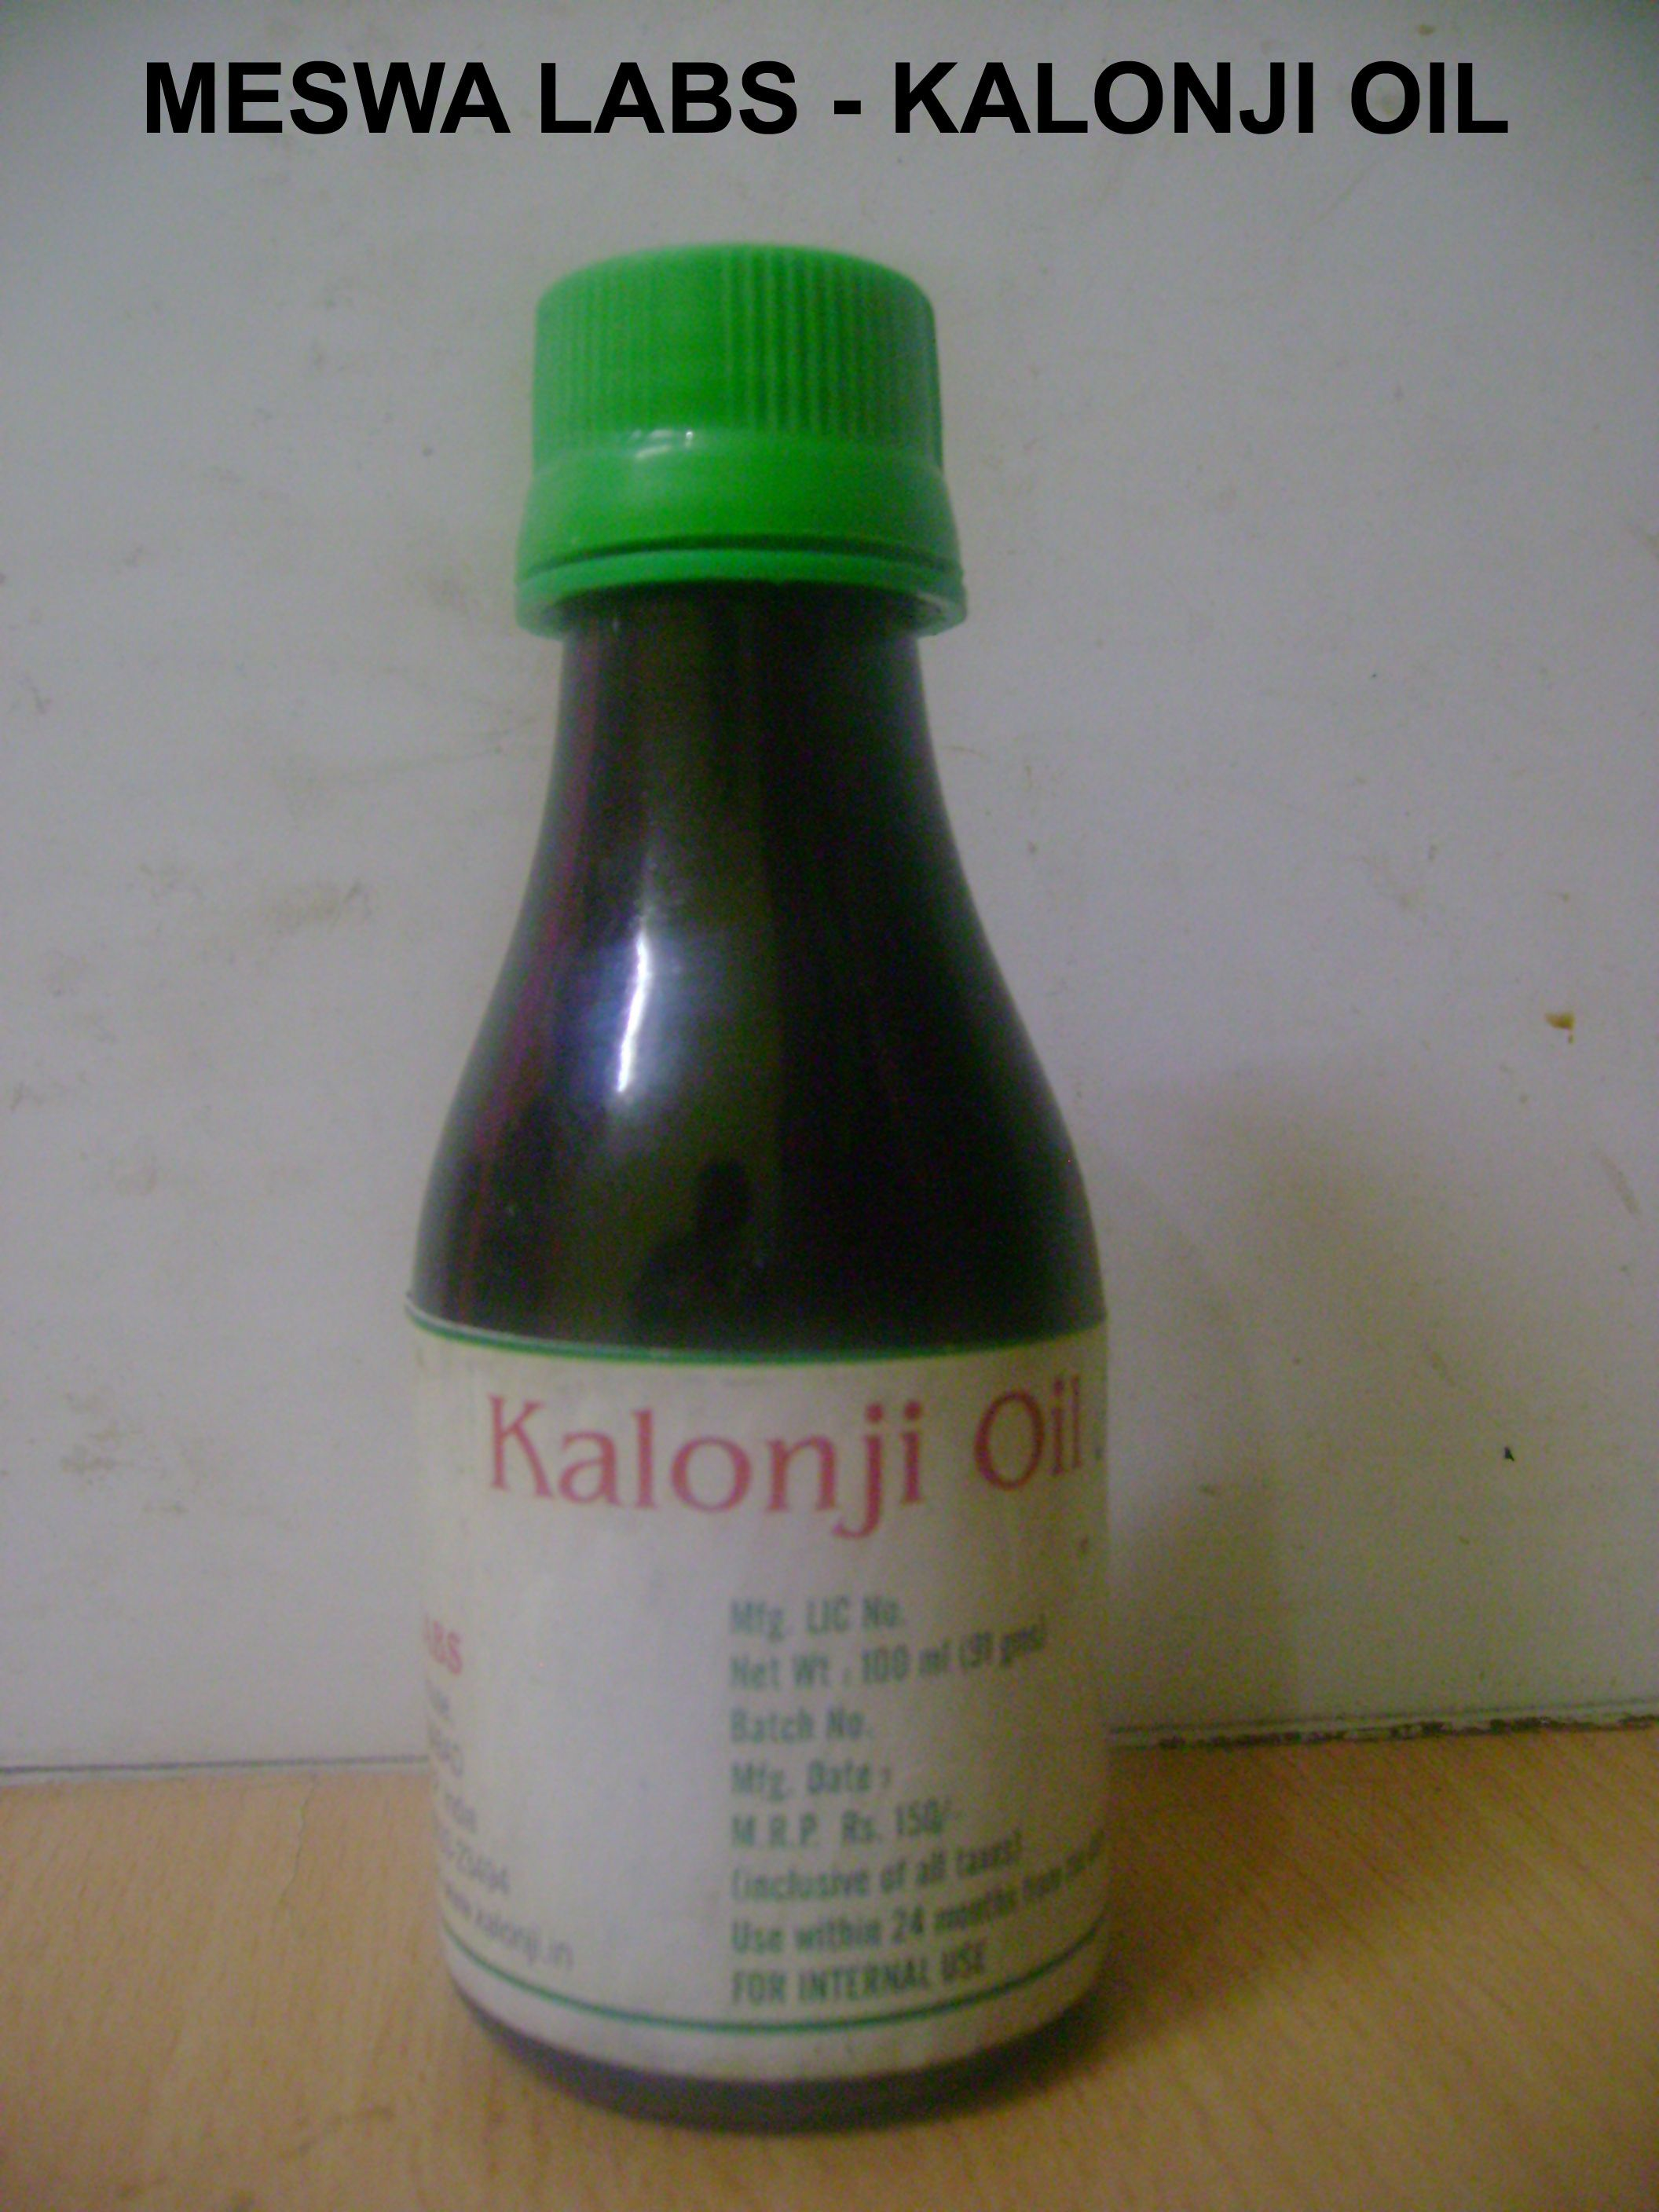 kalonji oil, pure kalonji oil, nigella sativa oil, black seeds, Habbah Sauda, Nigelle, Kalounji, fennel flower, black cumin, black caraway, nigella seeds, black seed oil